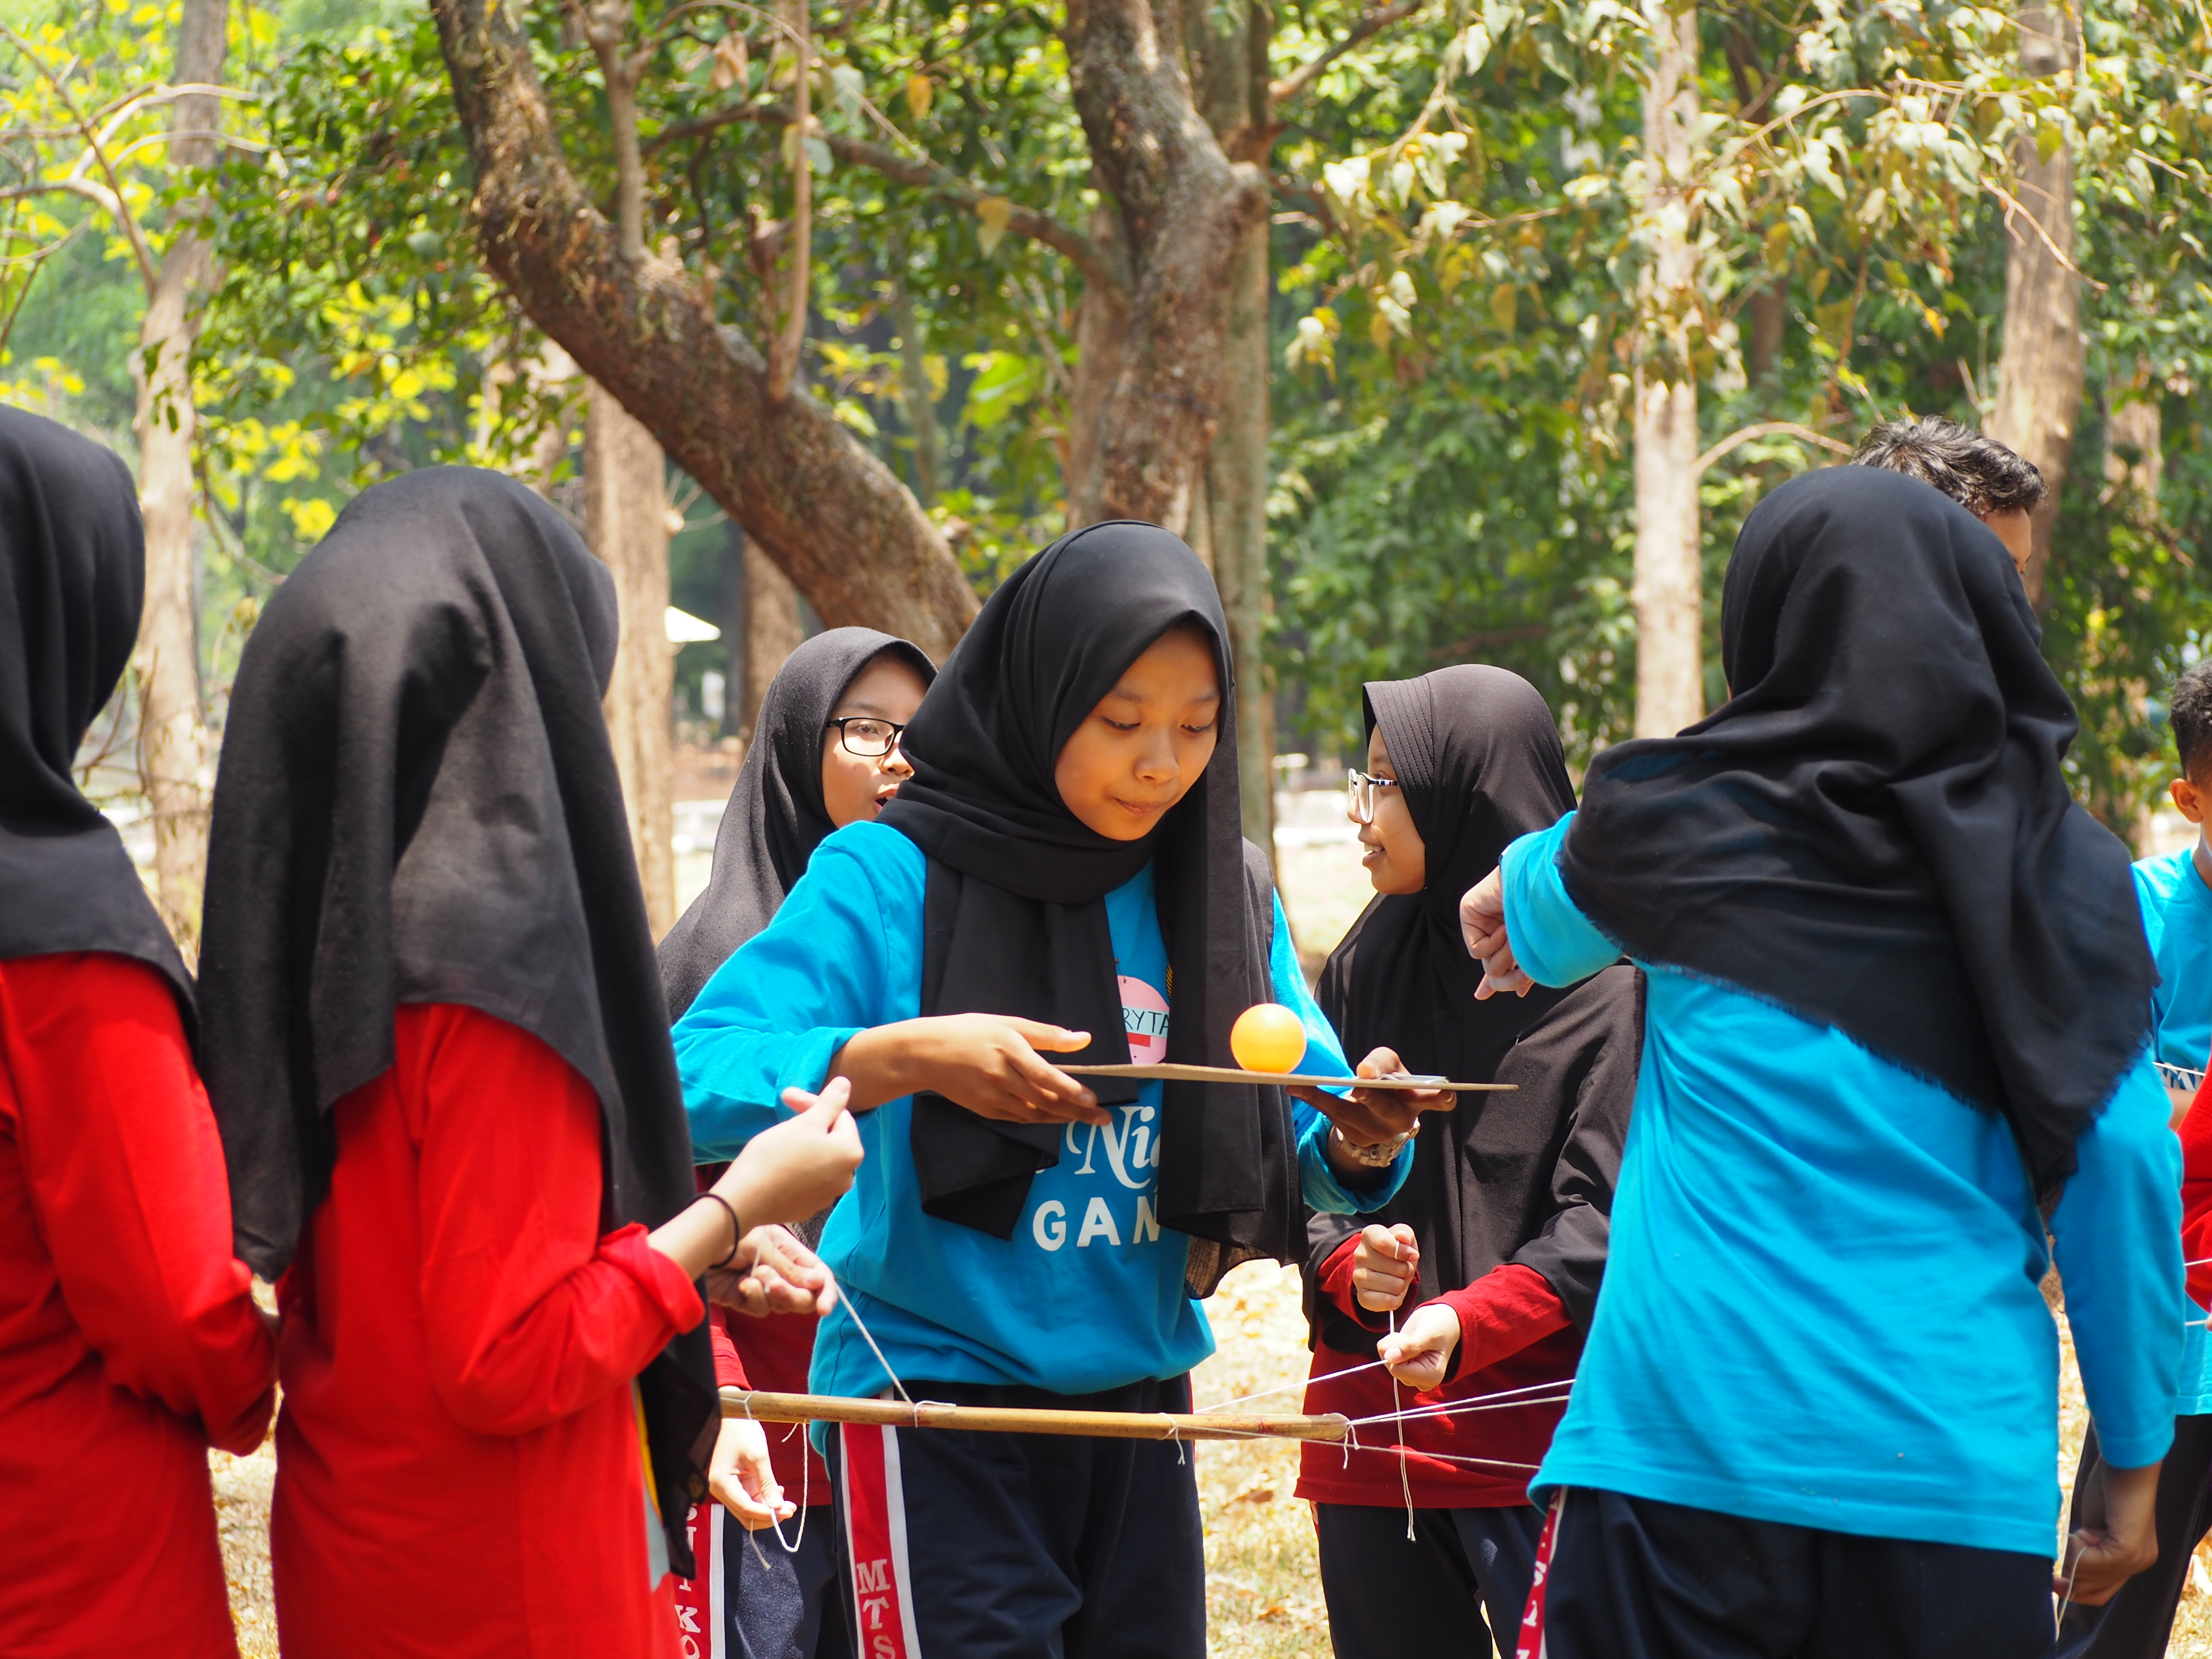 outbound leadership training, outbound leadership program, game outbound leadership, outbound kepemimpinan, outbound training, outbound malang batu, outbound malang murah, outbound malang harga, outbound di malang, paket outbound malang, adventure outbound malang, acara outbound malang, outbound di batu malang, wisata outbound batu malang, outbound daerah malang, pelatihan outbound di malang, kegiatan outbound di malang, outbound malang kota batu jawa timur, outbound di malang kota malang jawa timur, lokasi outbound malang, lembaga outbound malang, paket outbound murah malang, outbound seru malang, tempat outbound malang, training outbound malang, wisata outbound malang, paket outbound jawa timur, harga paket outbound jawa timur, outbound malang kota batu jawa timur, outbound training di jawa timur, lokasi outbound jawa timur, tempat outbound jawa timur, wisata outbound jawa timur,